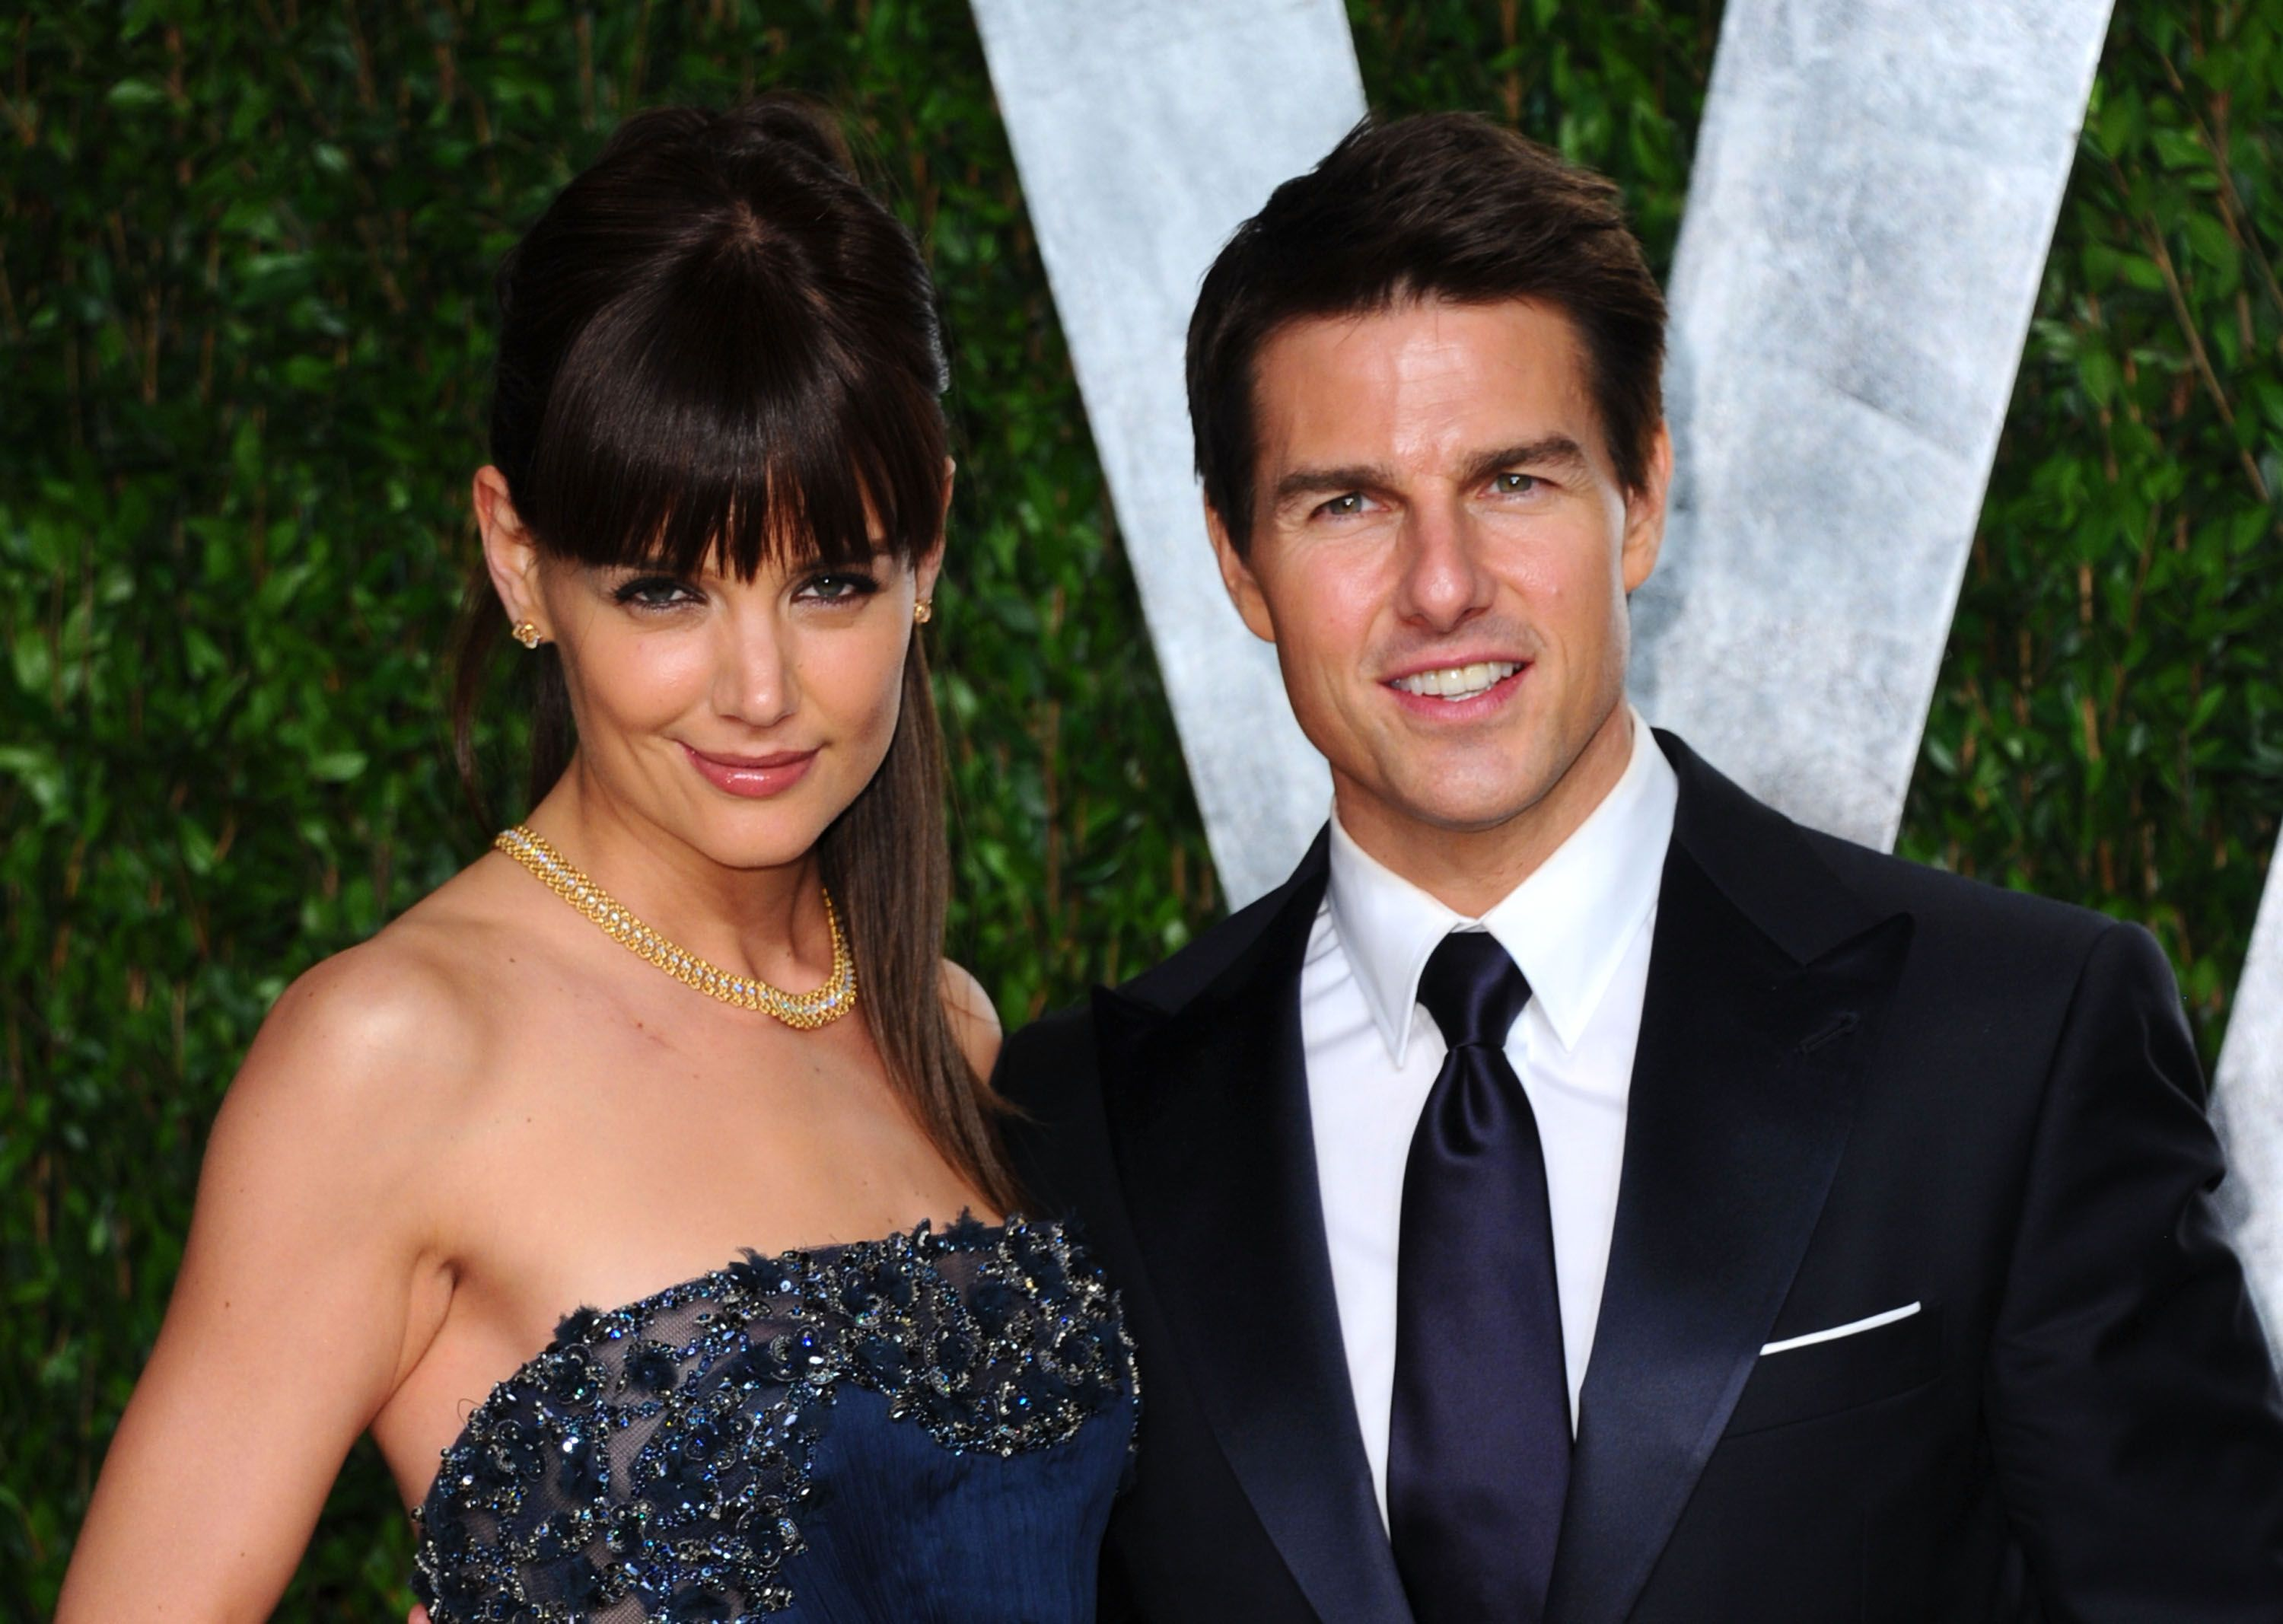 Katie Holmes and actor Tom Cruise at the 2012 Vanity Fair Oscar Party on February 26, 2012 in West Hollywood, California | Photo: Getty Images